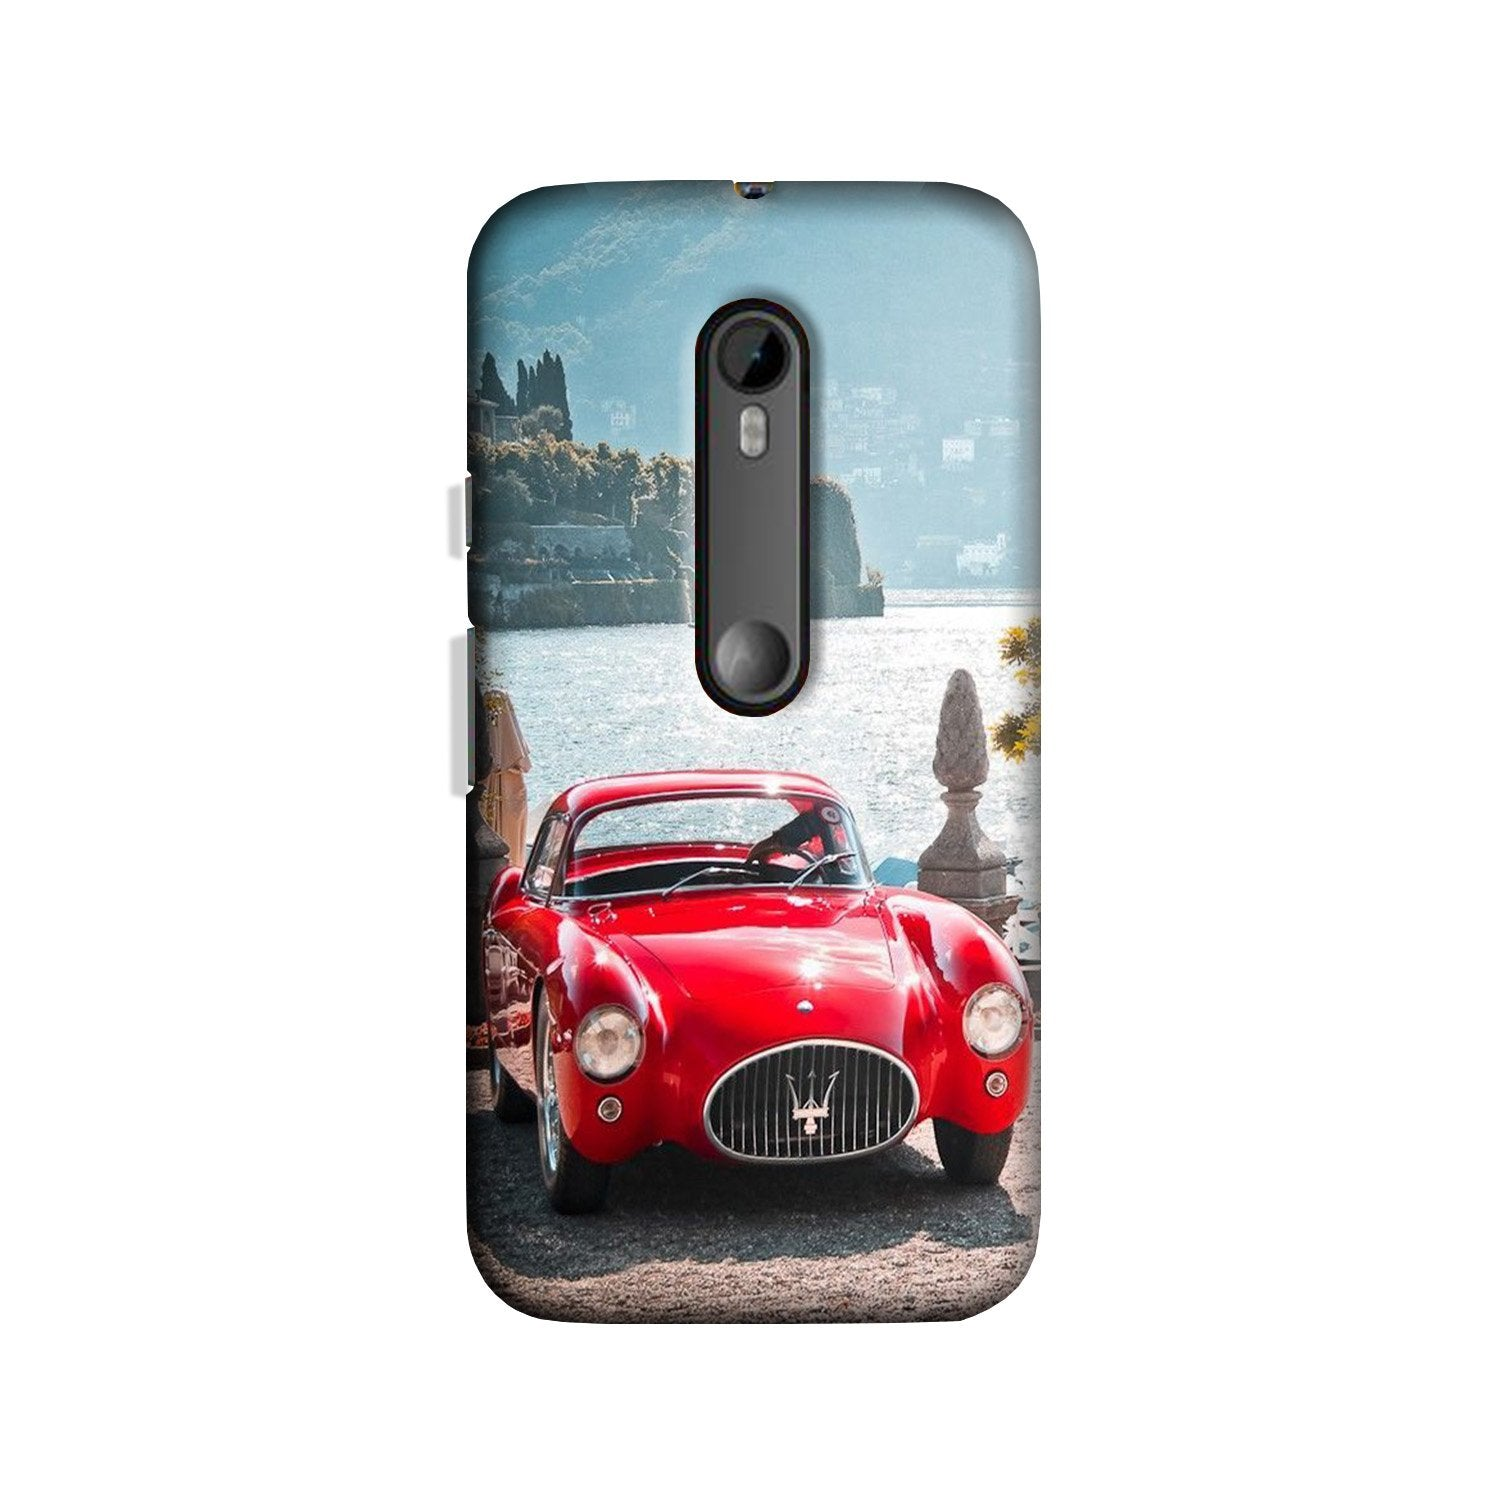 Vintage Car Case for Moto G 3rd Gen